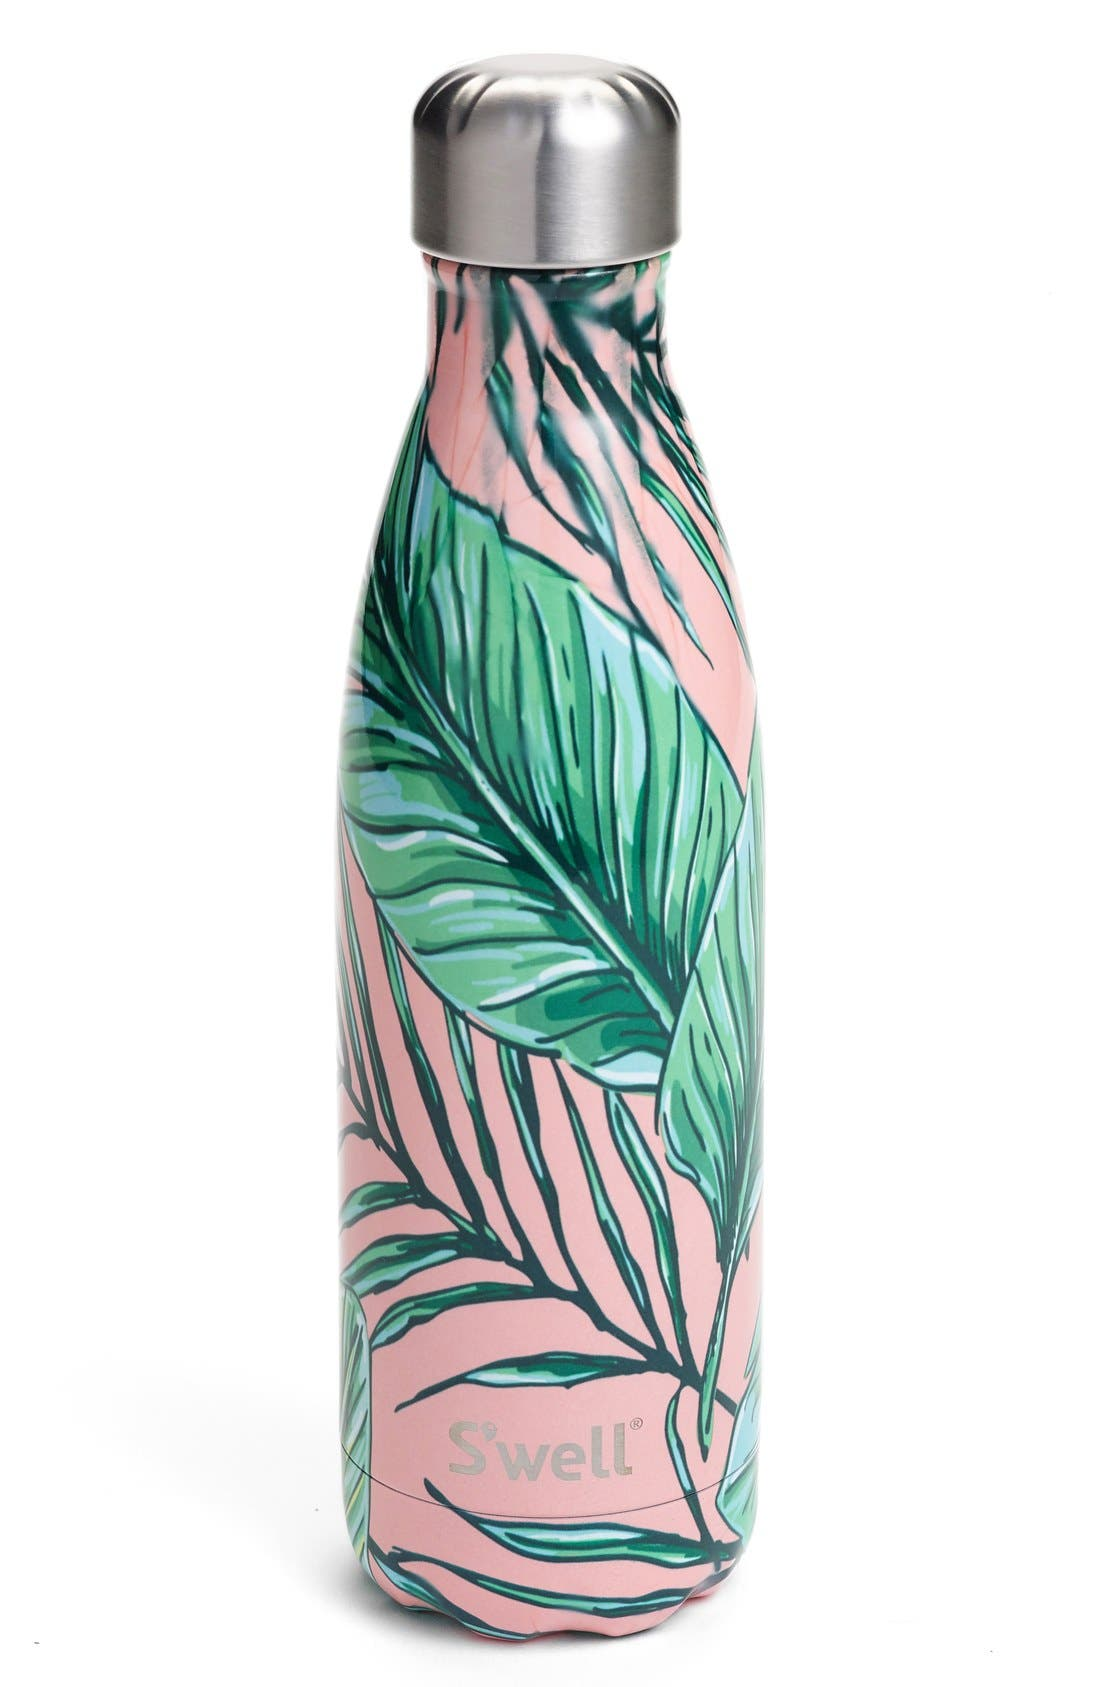 Main Image - S'well 'Palm Beach' Stainless Steel Water Bottle